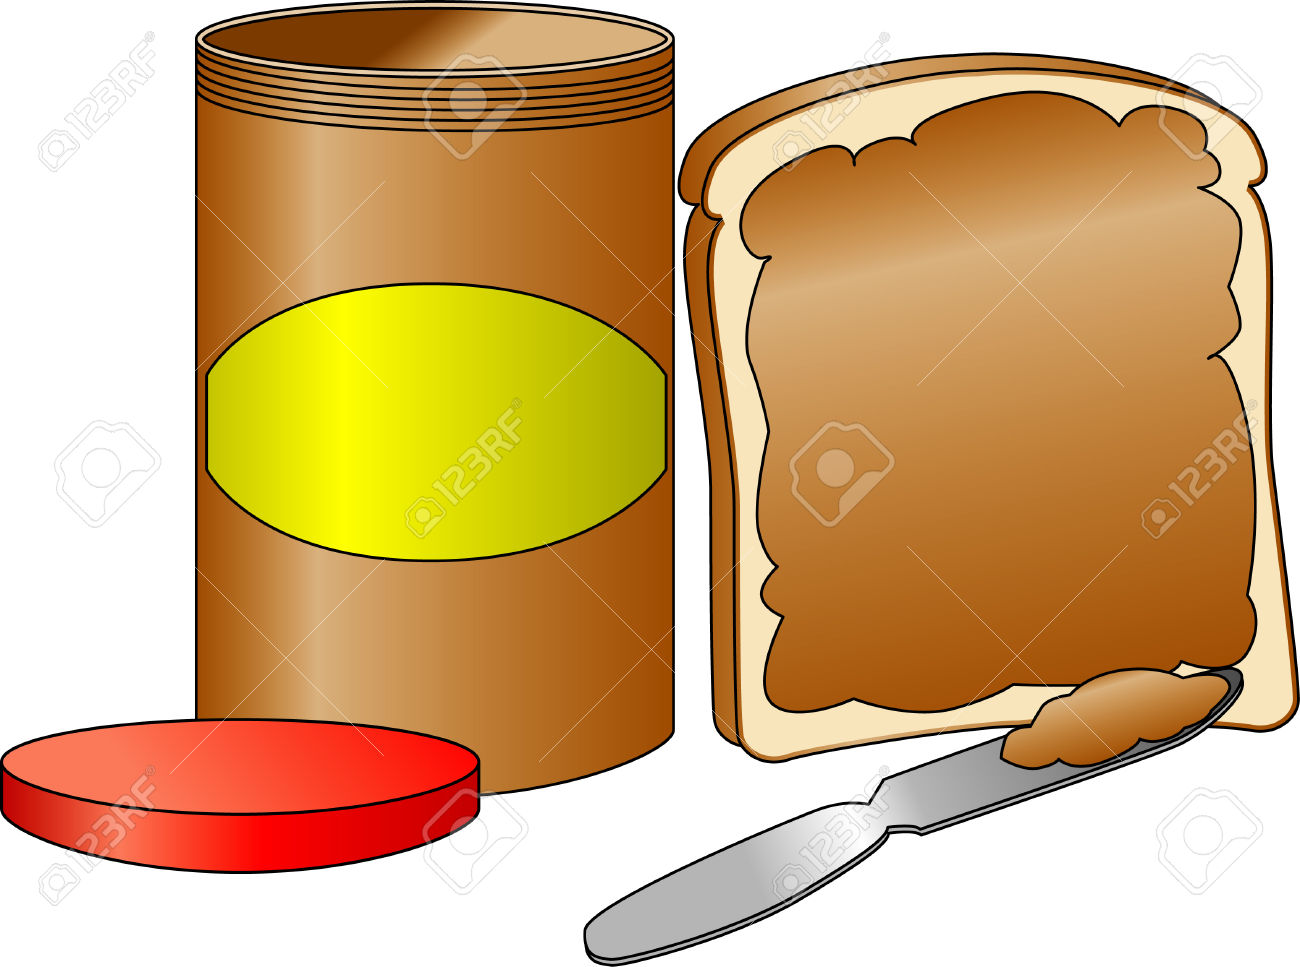 Spread clipart png freeuse stock spread: Bread with spread | Clipart Panda - Free Clipart Images png freeuse stock